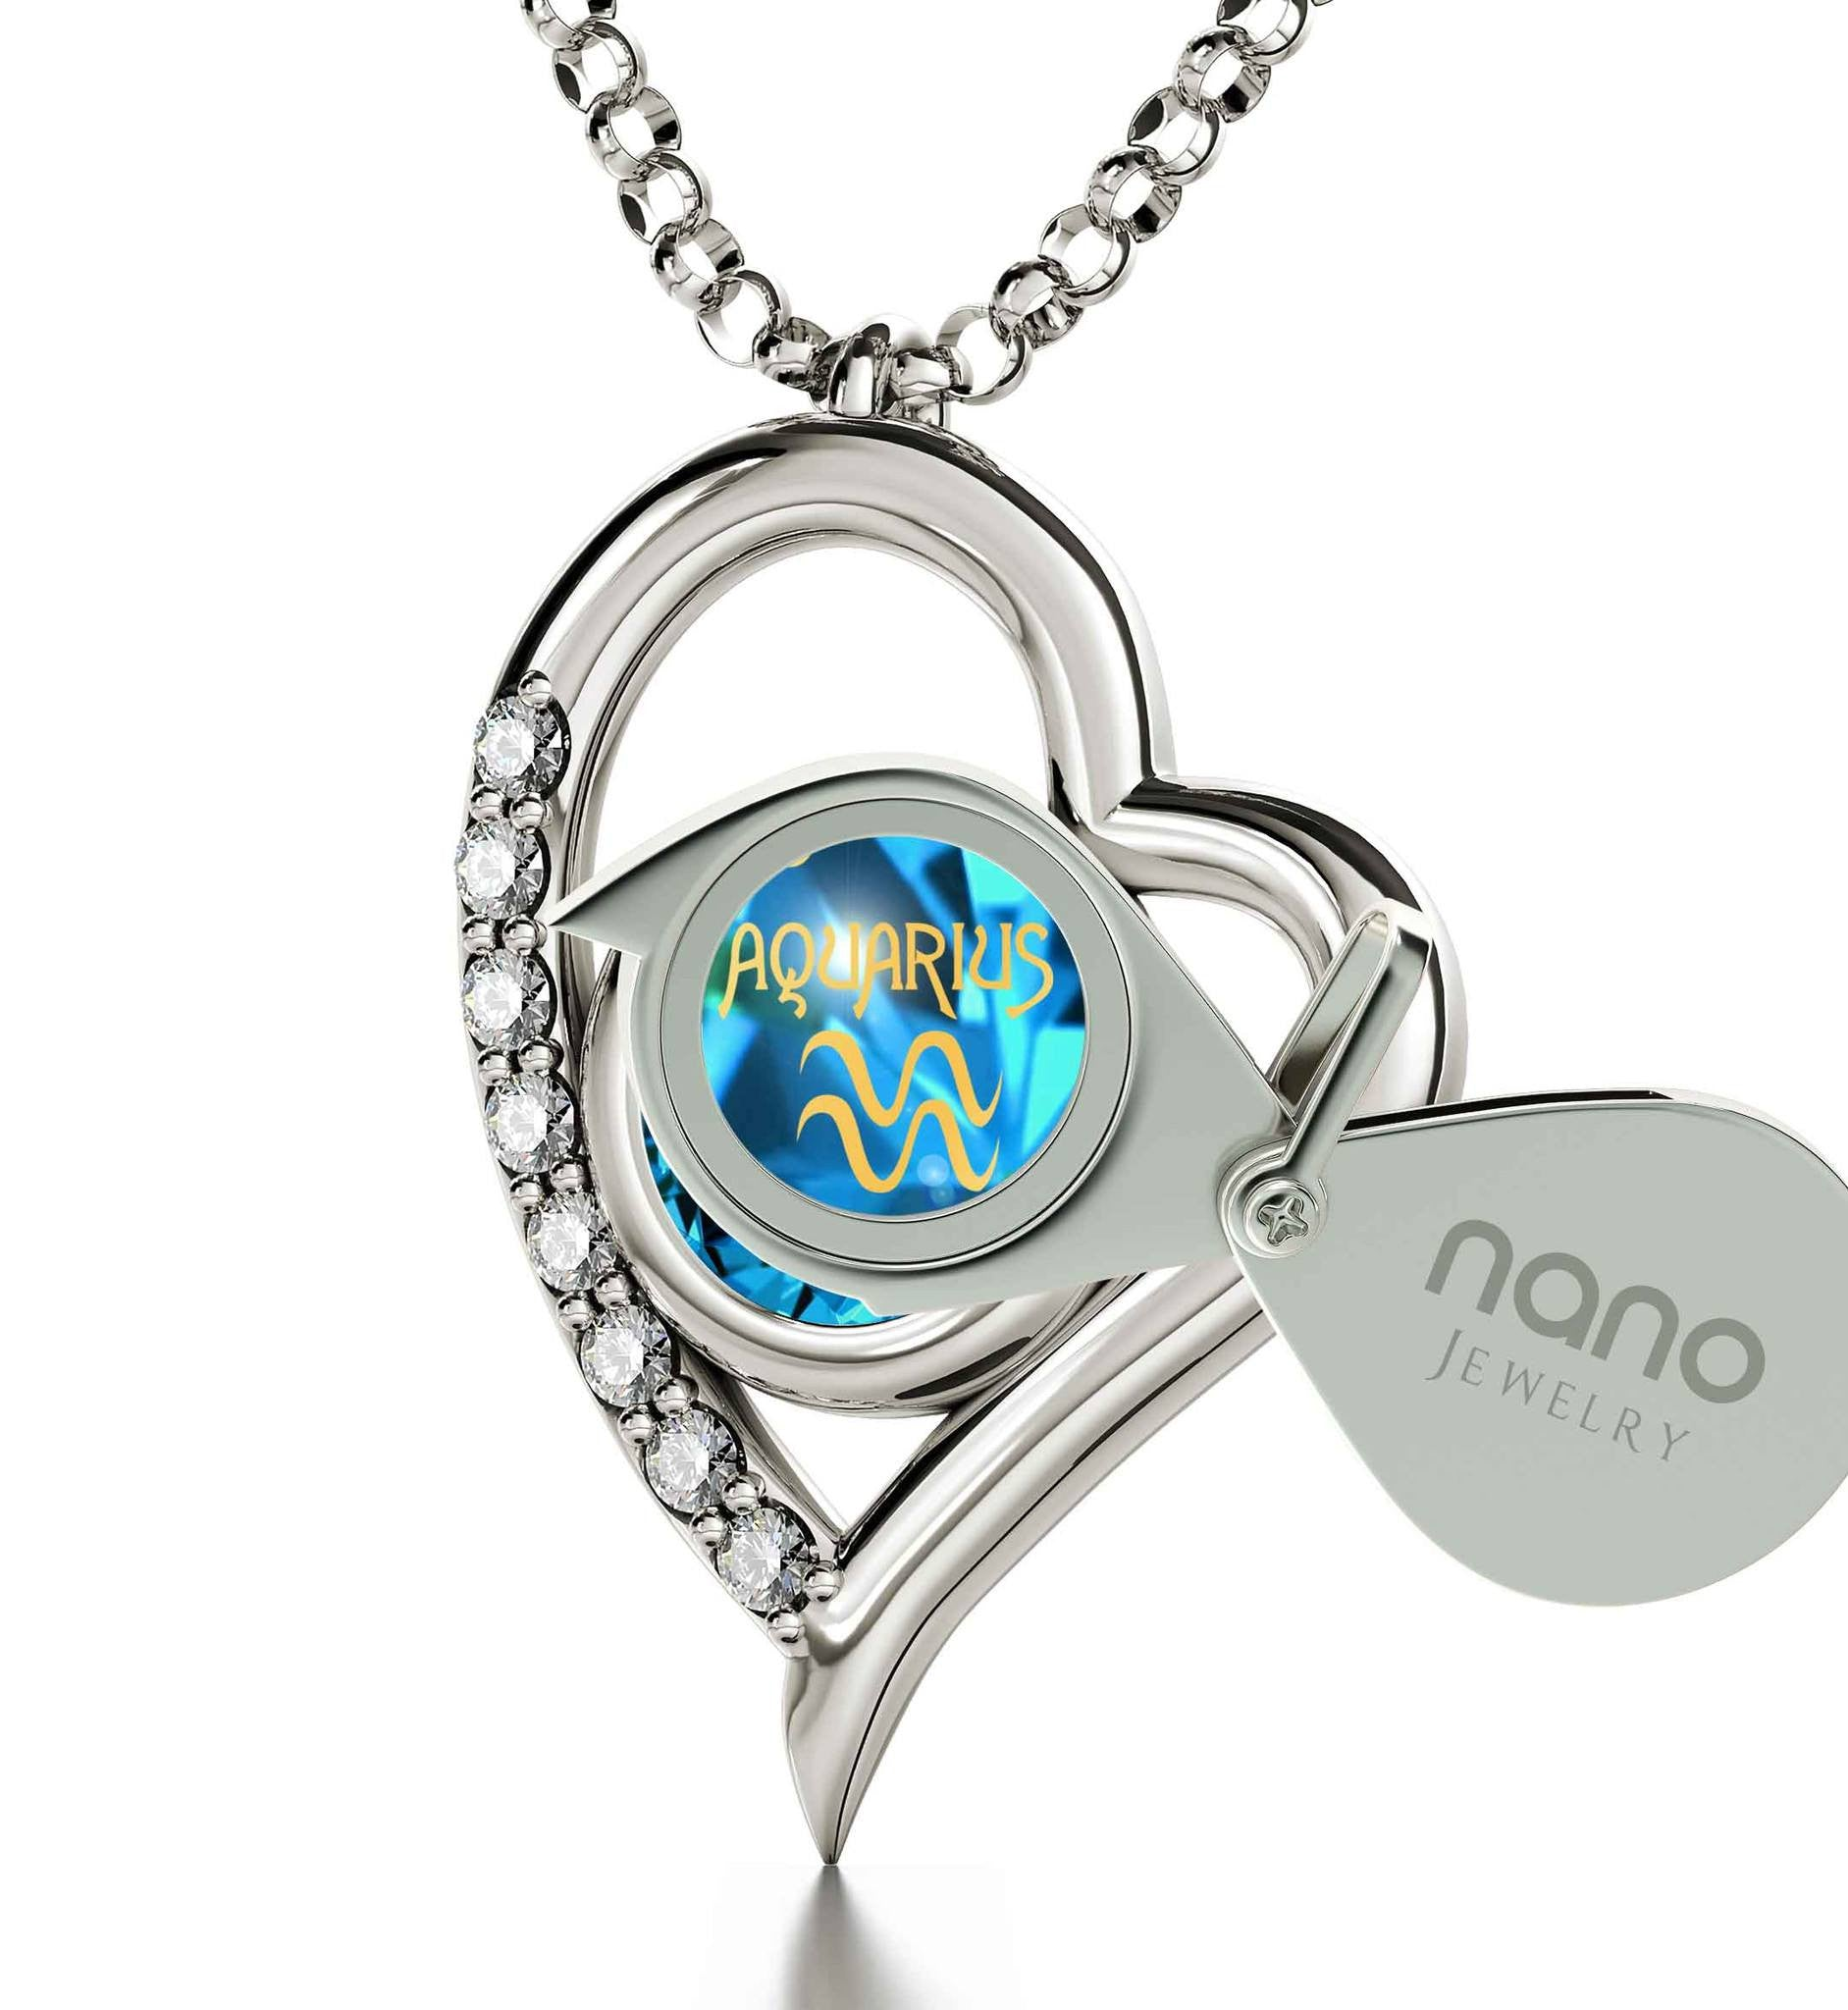 """Aquarius Jewelry With Zodiac Imprint, Gifts for Best Friend Woman, Christmas Presents for Teenagers, Blue Stone Necklace"""